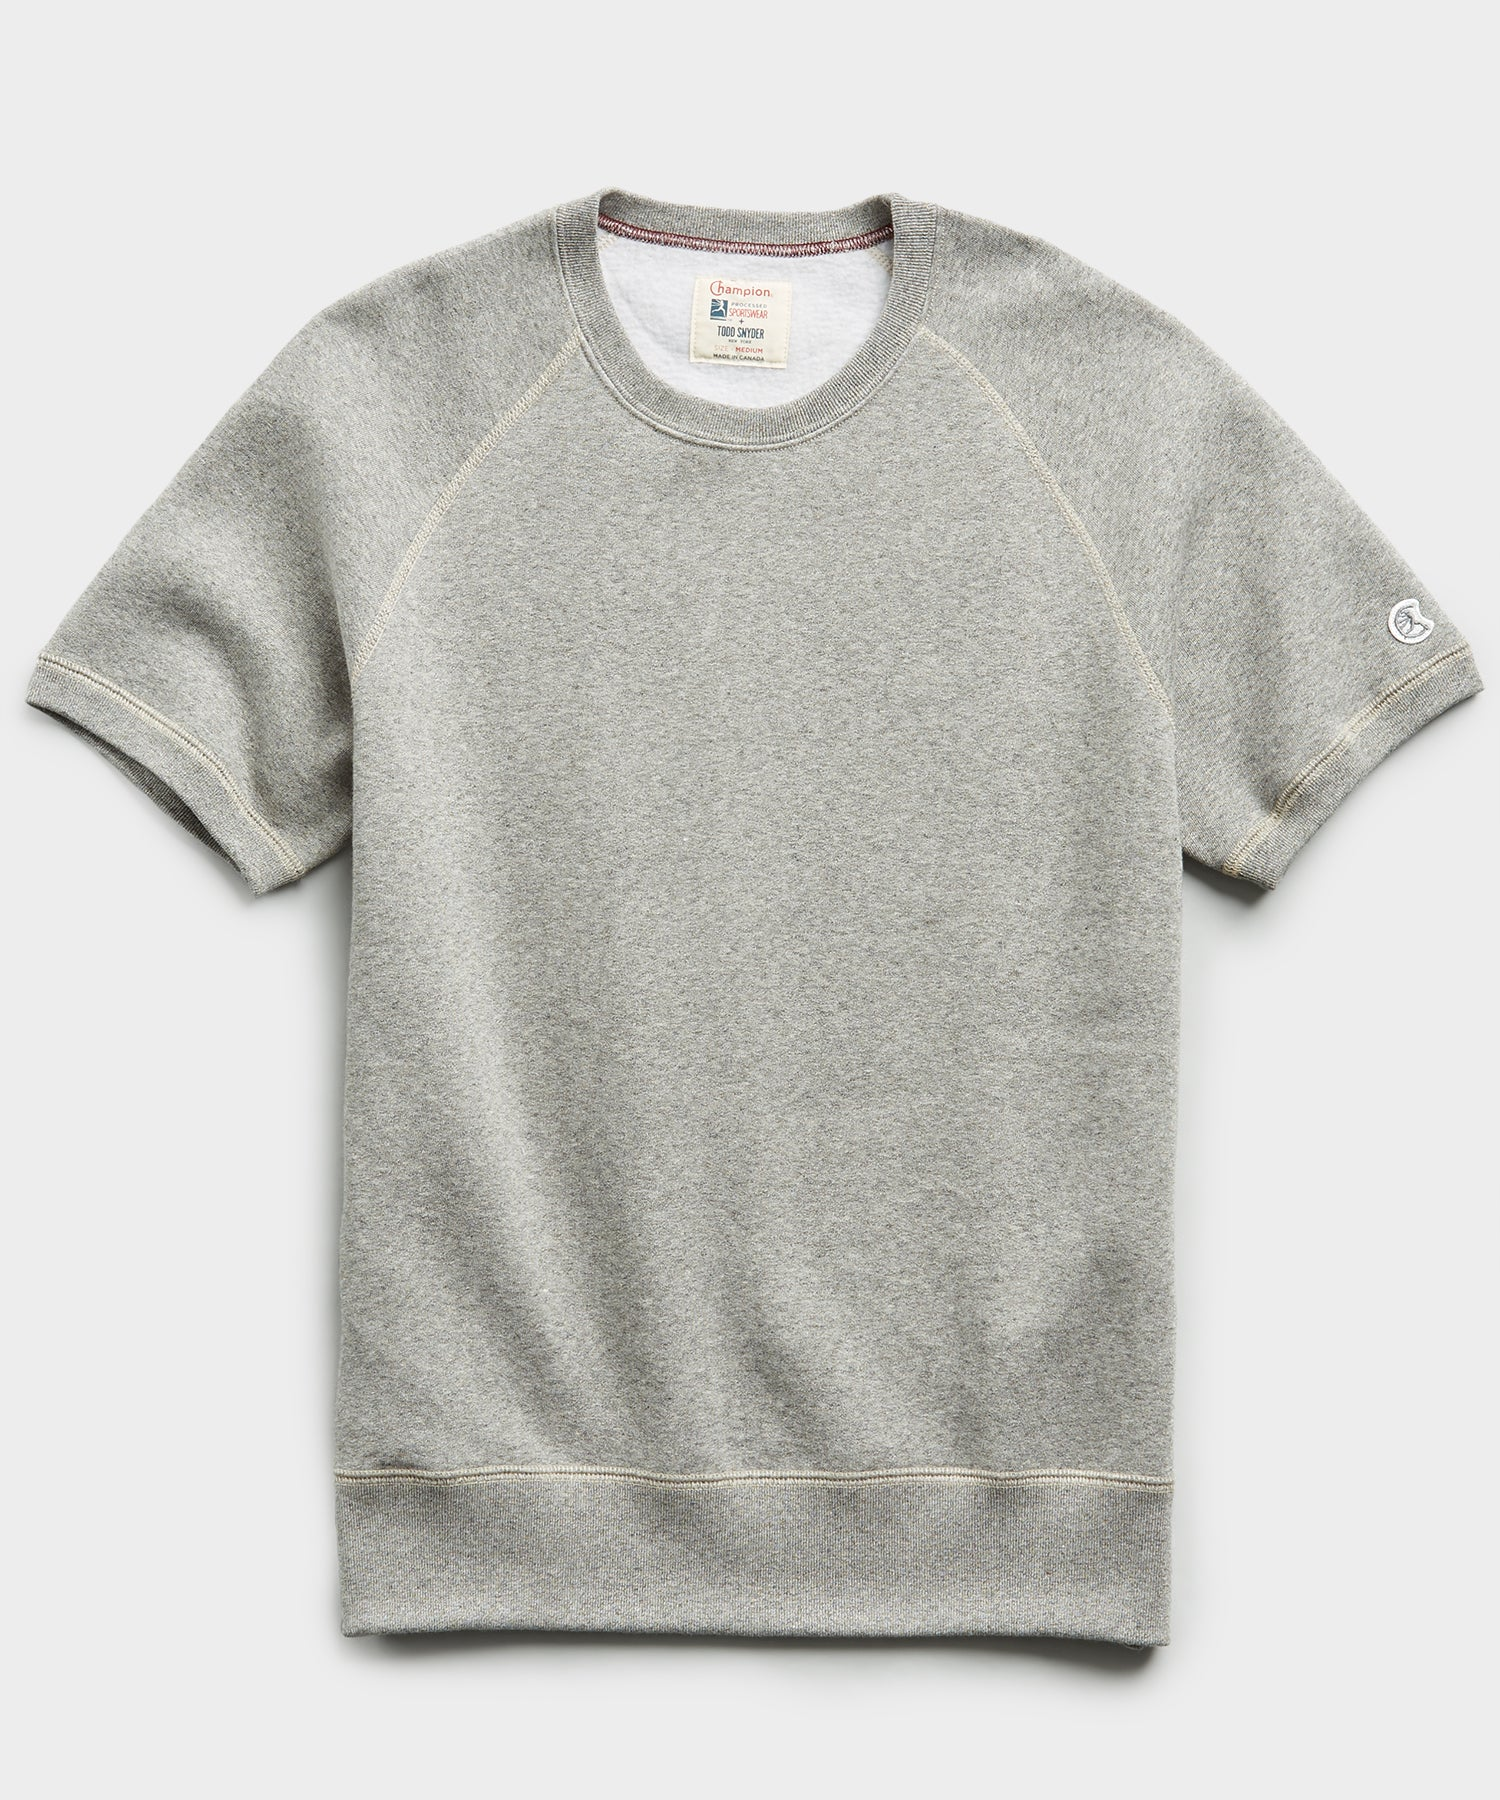 Fleece Short Sleeve Sweatshirt in Light Grey Mix